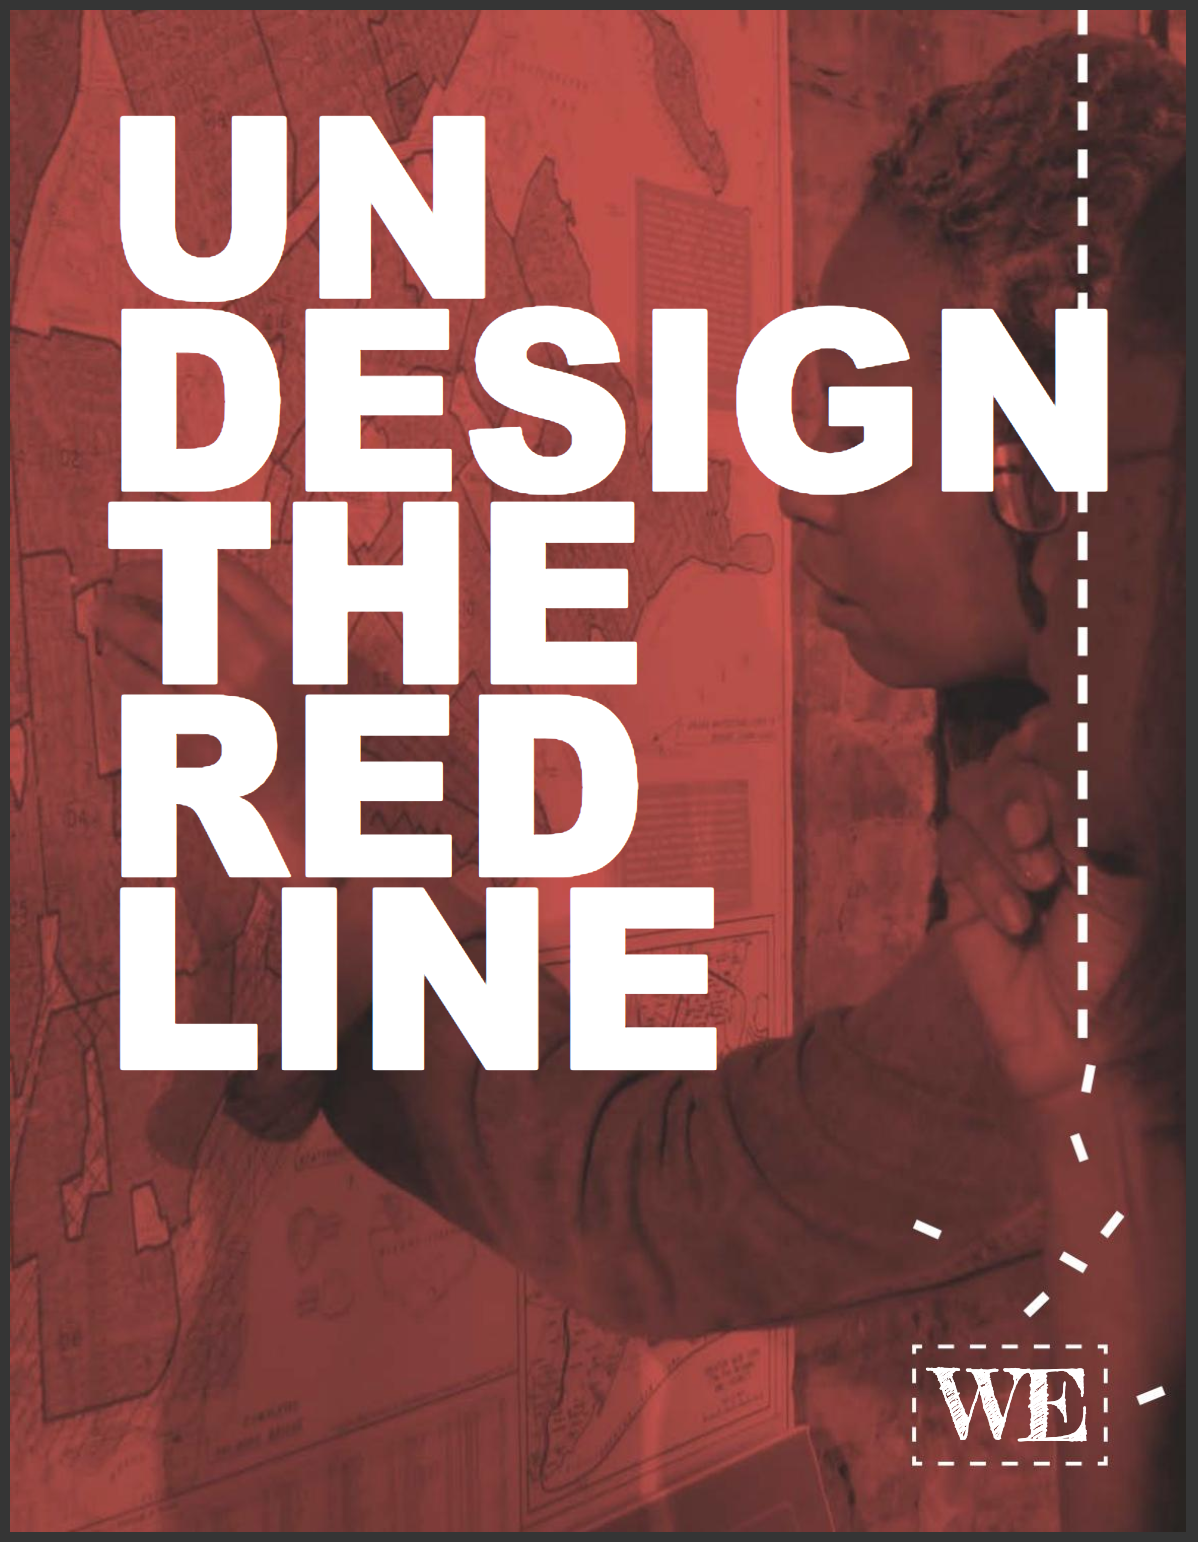 Undesign the Redline Logo, white text against a red background with designing the WE logo in the bottom corner.